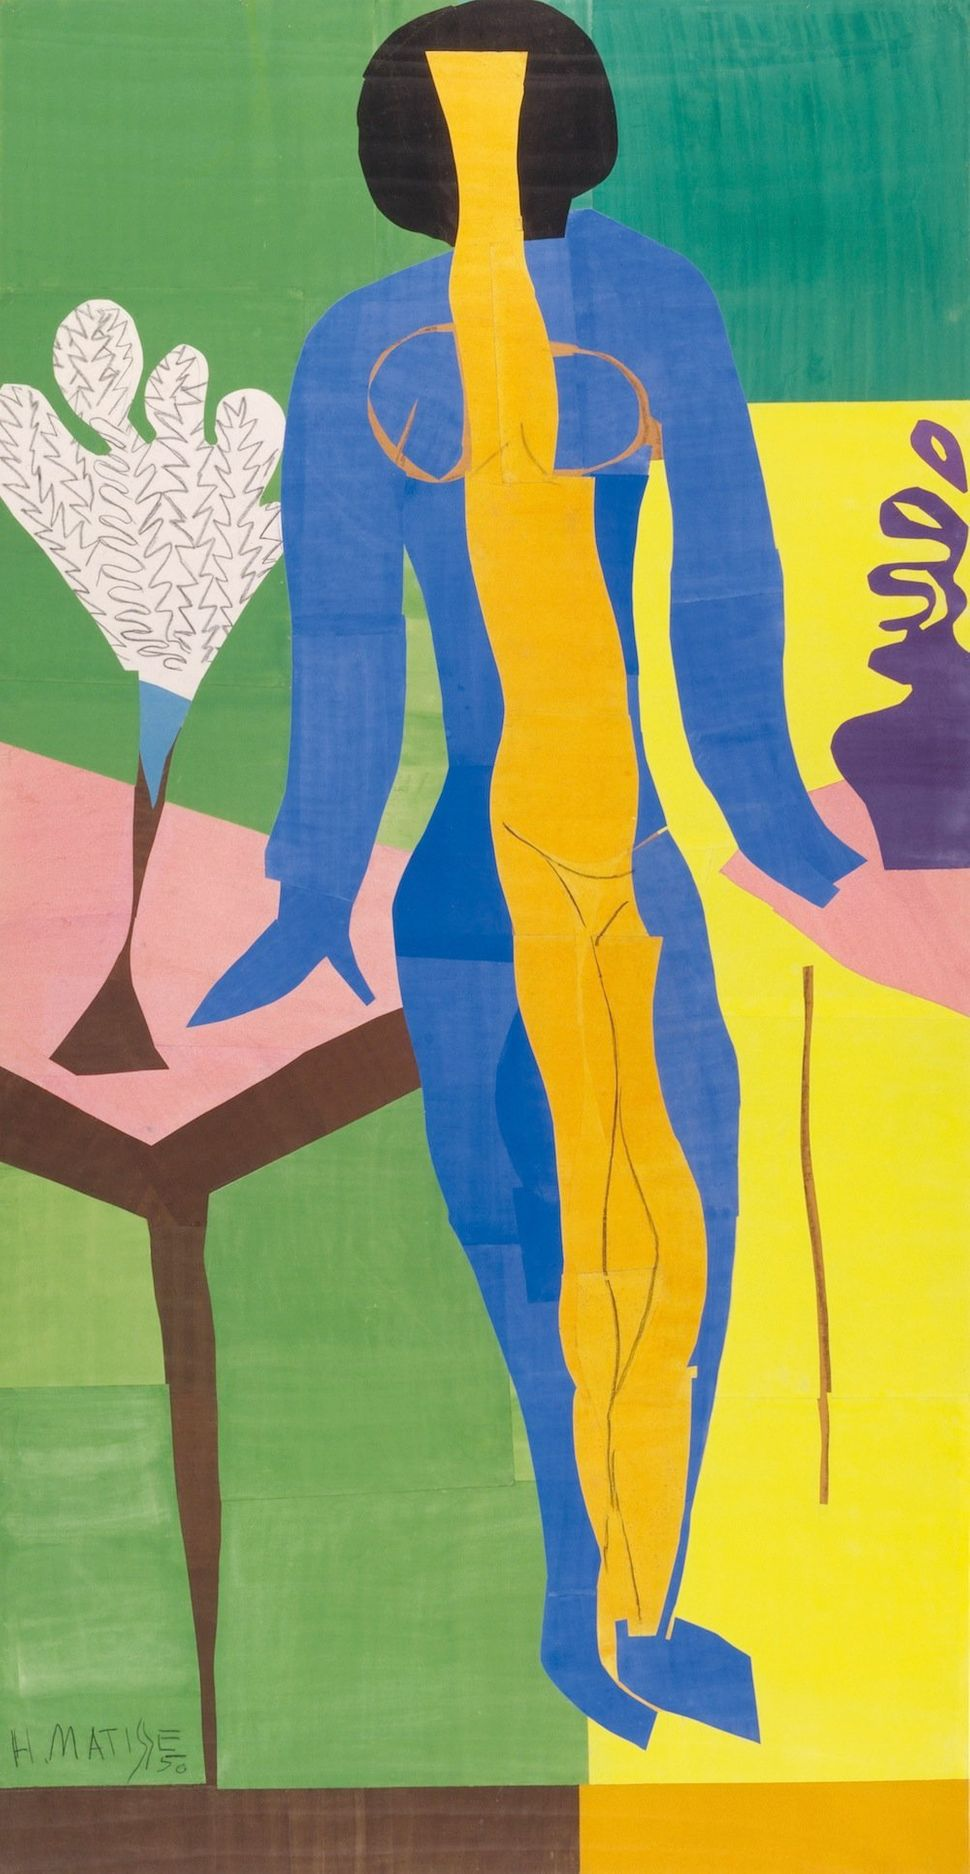 Henri Matisse (French, 1869-1954). Zulma, early 1950. Gouache on paper, cut and pasted. 93 11/16 x 52 3/8″ (238 x 133 cm). St